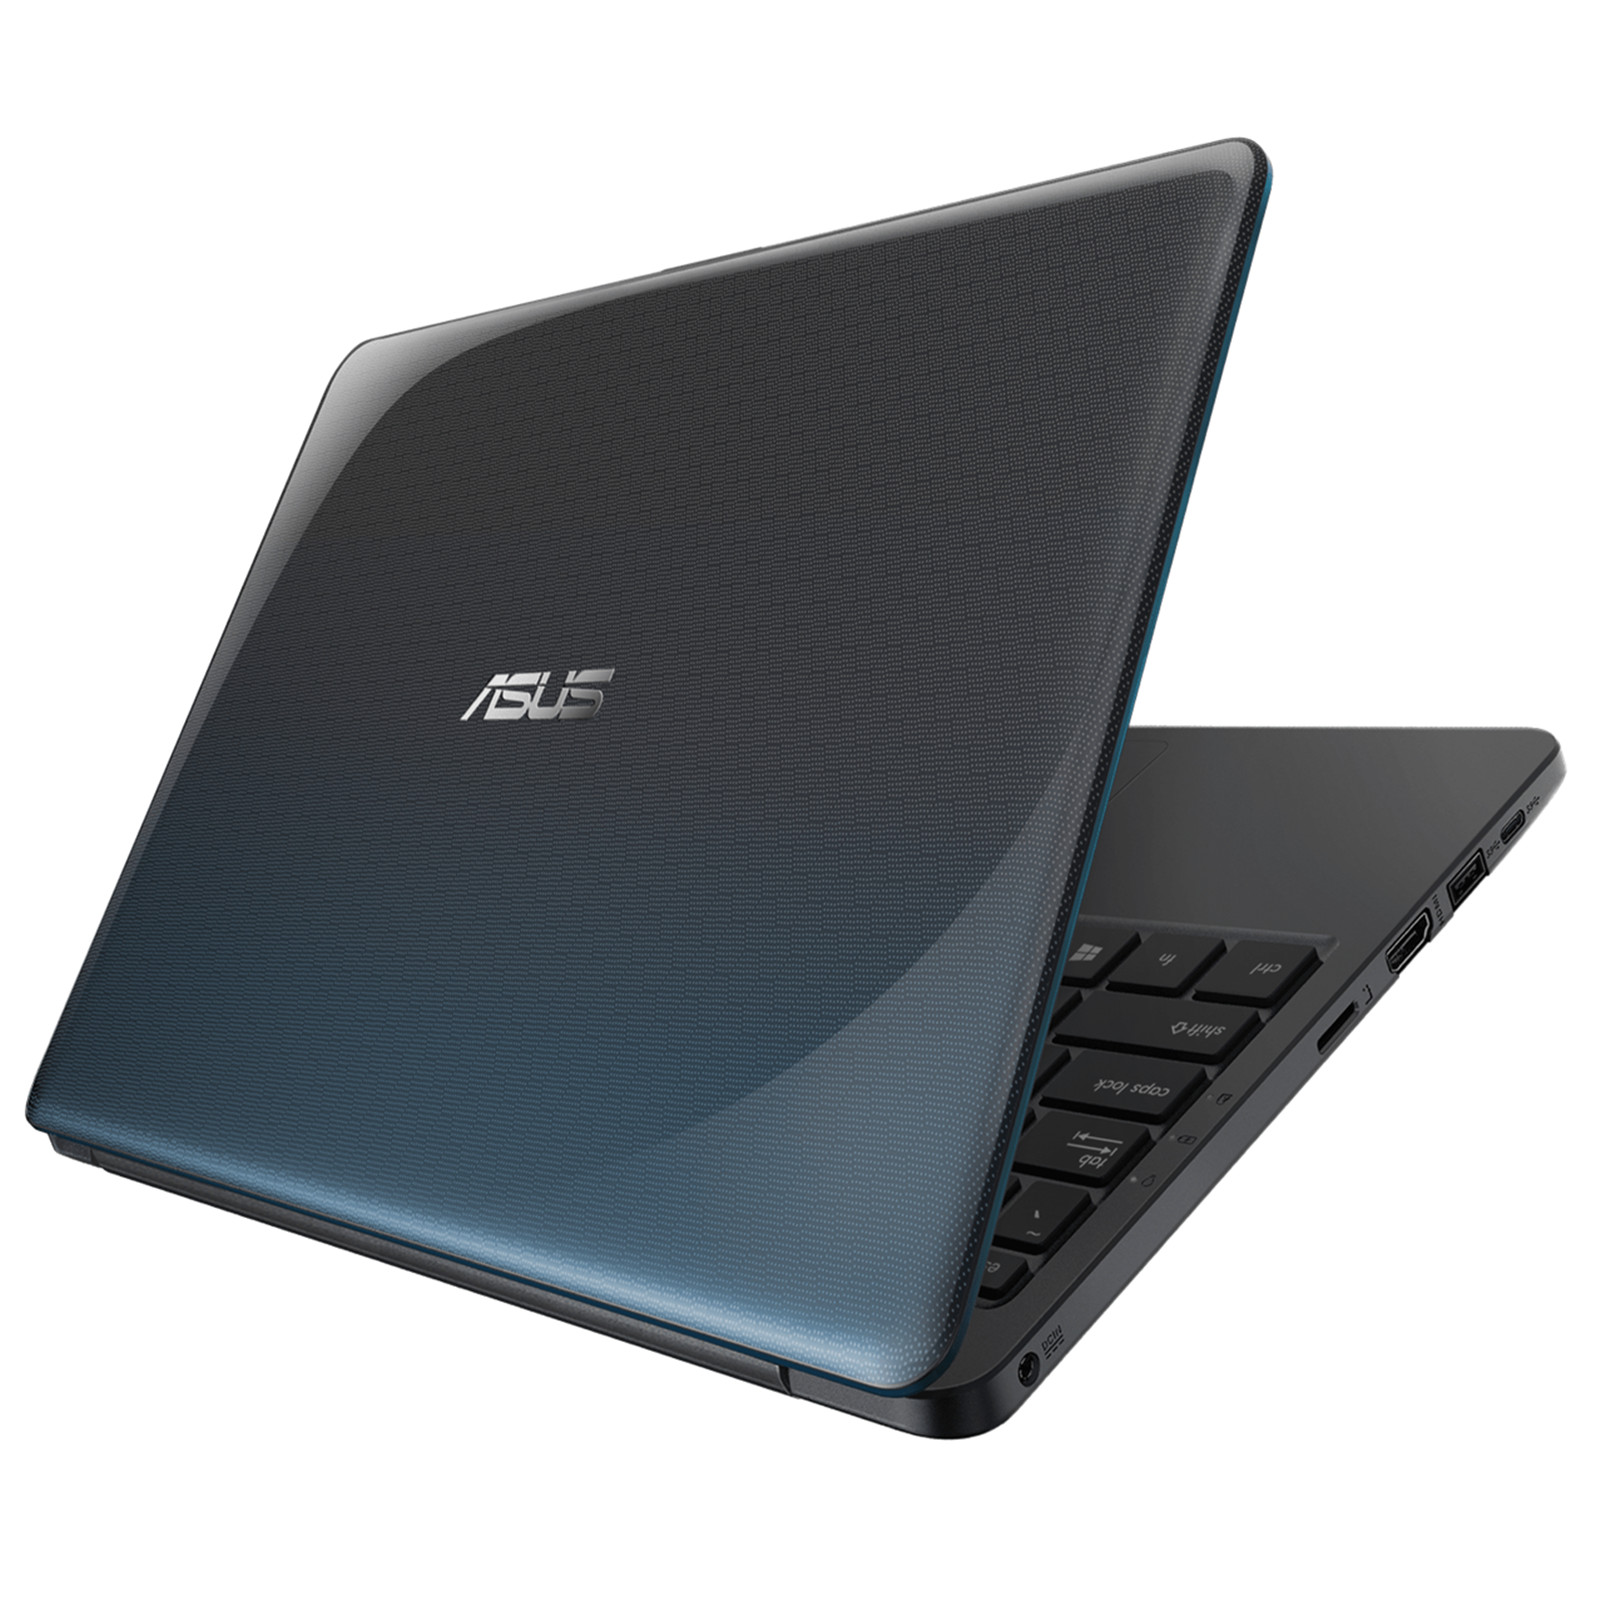 Asus, W203MA, Edu, Laptop, 11.6, HD, Intel, Celeron, N4000, 4GB, 64GB, eMMC, WIN10, STORE, 1YR, WTY, W10S, Notebook, (W203MA-FD065TS),